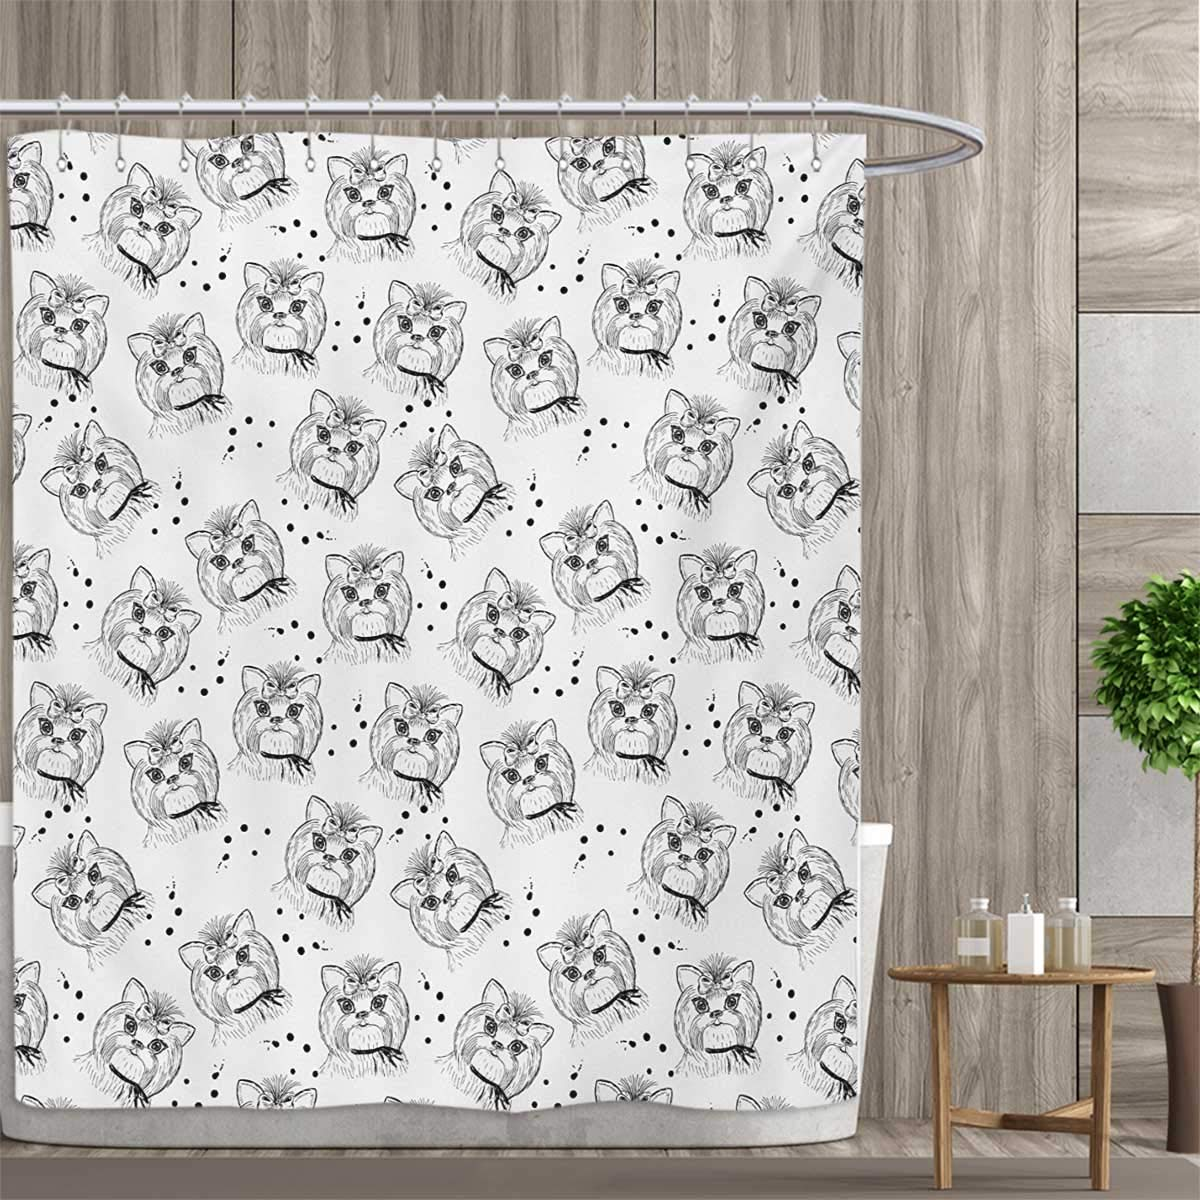 color07 69 x 70 (inch) color07 69 x 70 (inch) smallfly Black and White Satin Fabric Bathroom Washable Cute Dog Pattern with Buckle and Collar Monochrome House Pet Illustration Shower Curtains Digital Printing 69 x70  Black White